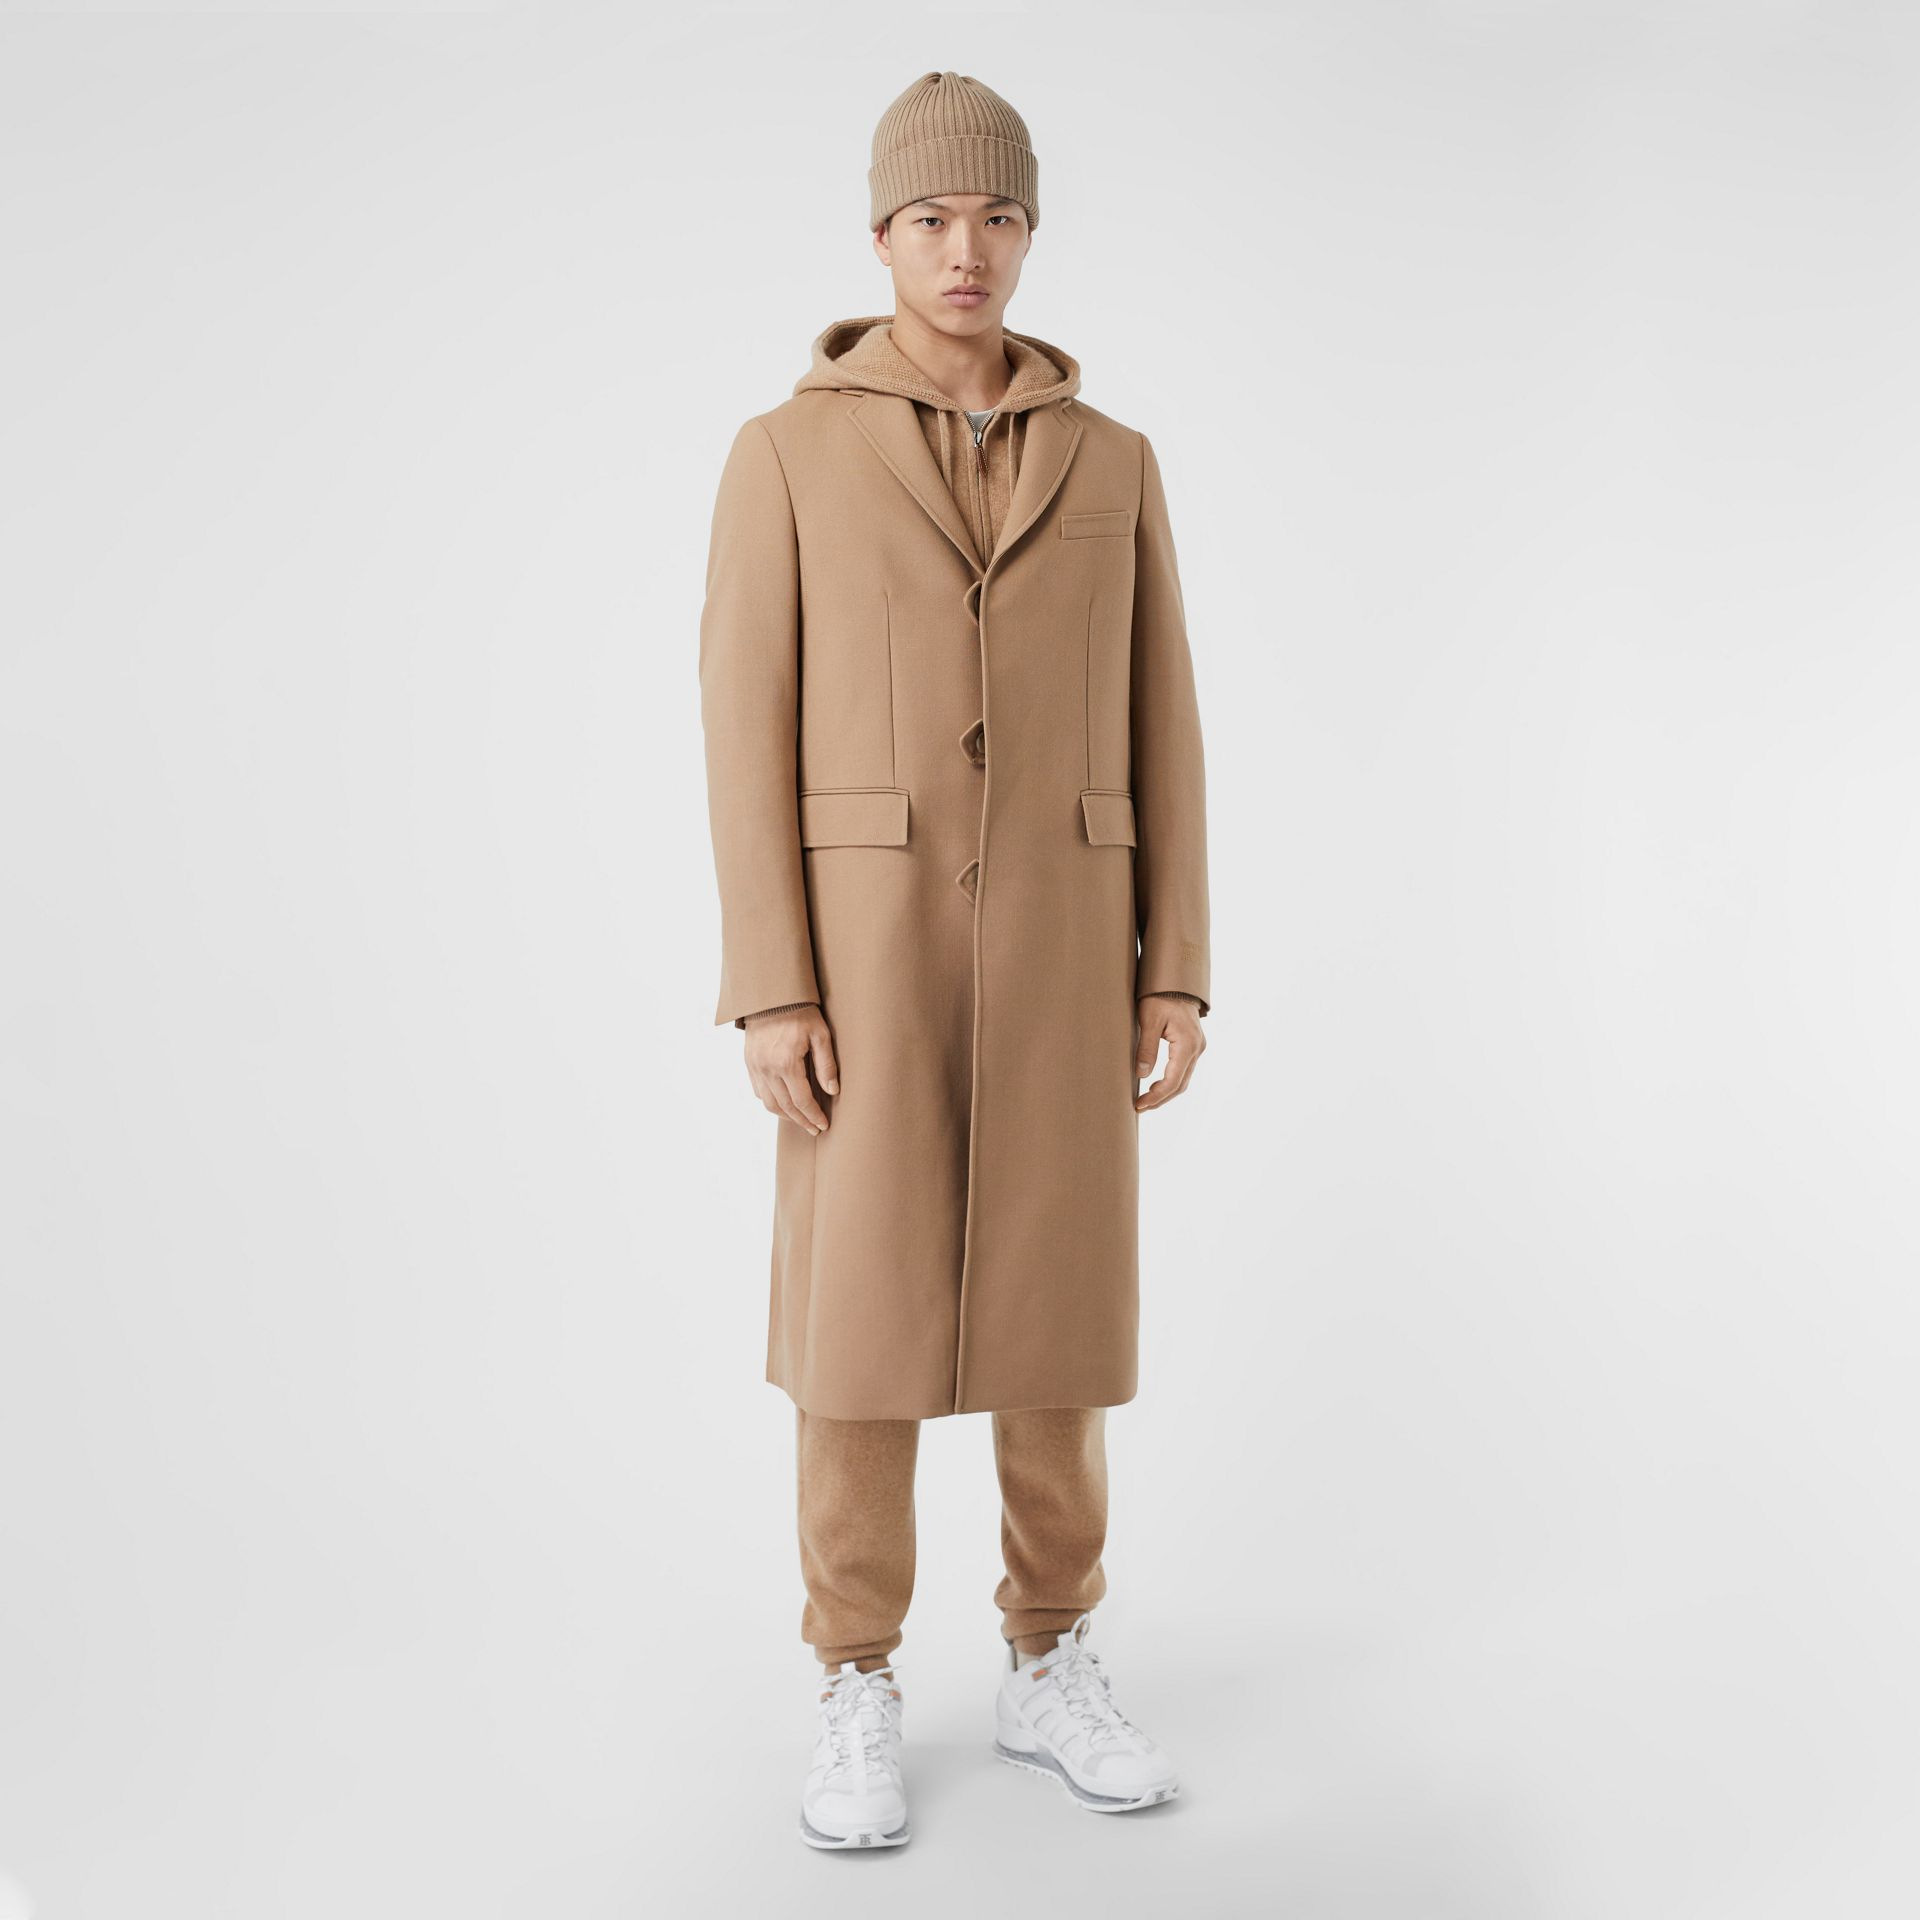 Logo Embroidered Wool Coat in Camel - Men | Burberry Singapore - gallery image 4